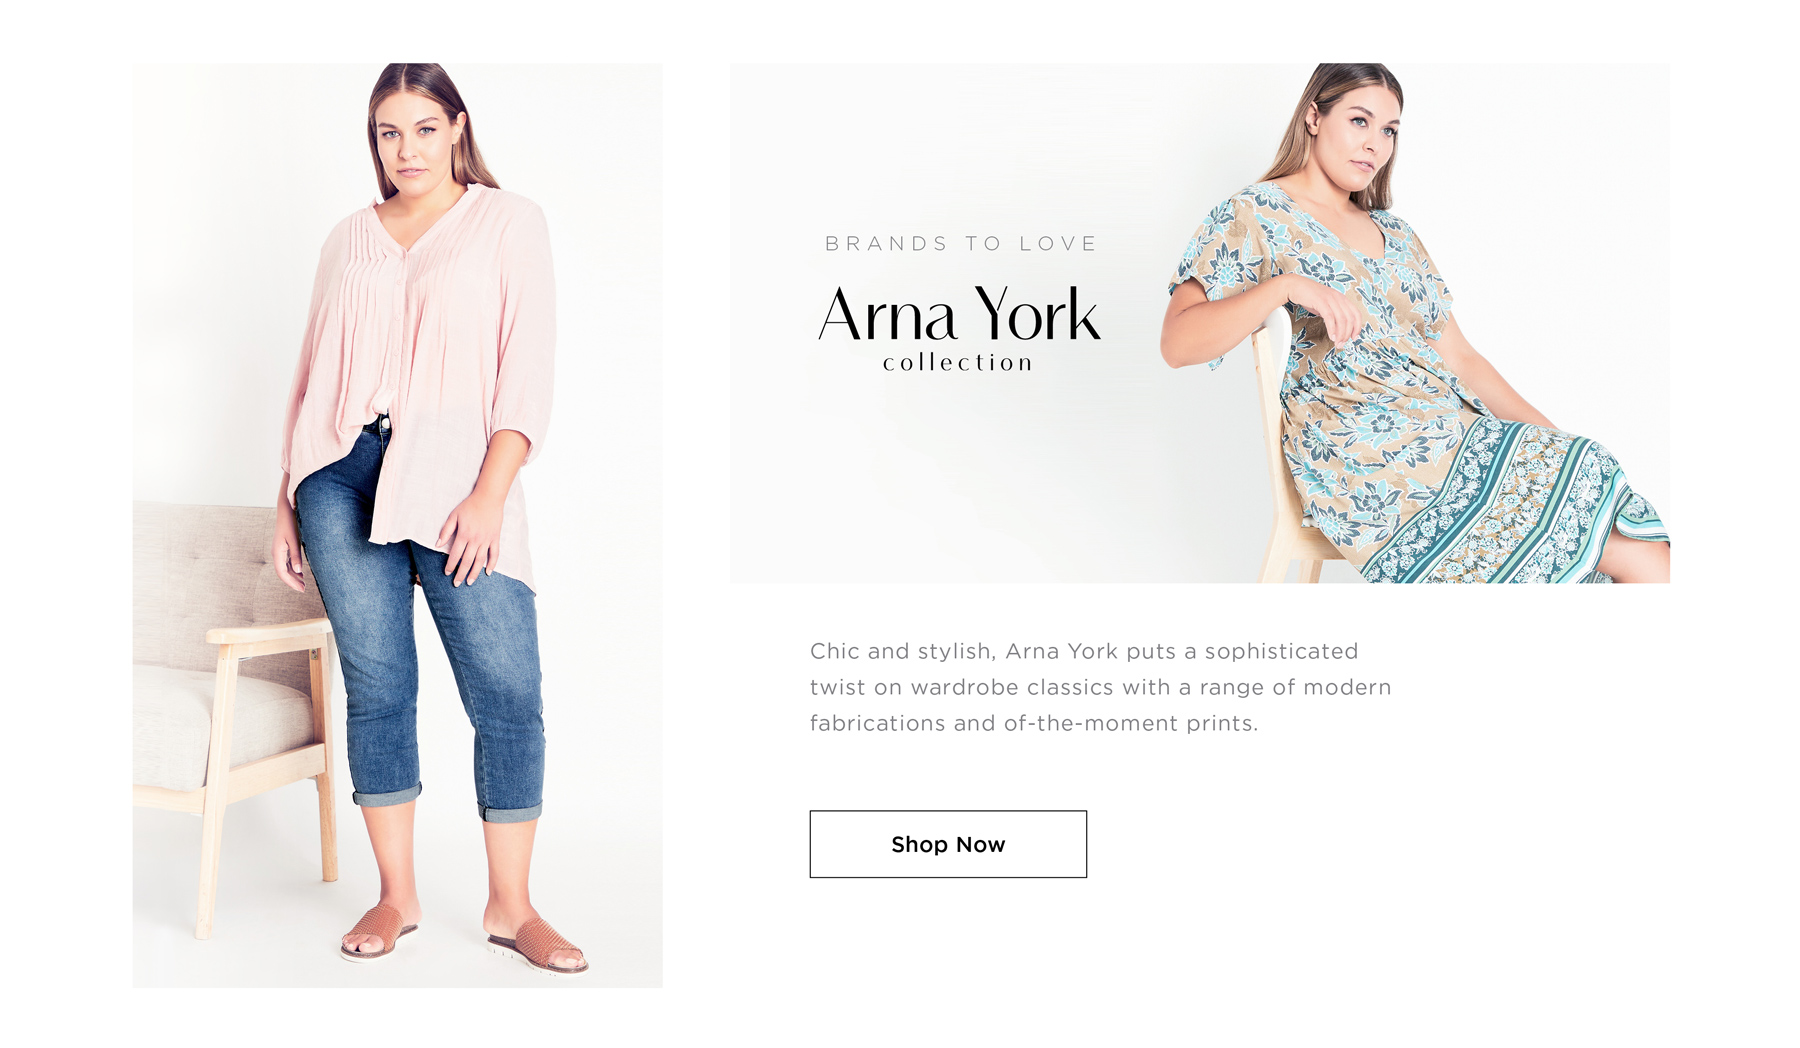 BRANDS TO LOVE: ARNA YORK COLLECTION - Chic and stylish, Arna York puts a sophisticated twist on wardrobe classics with a range of modern fabrications and of-the-moment prints - SHOP NOW